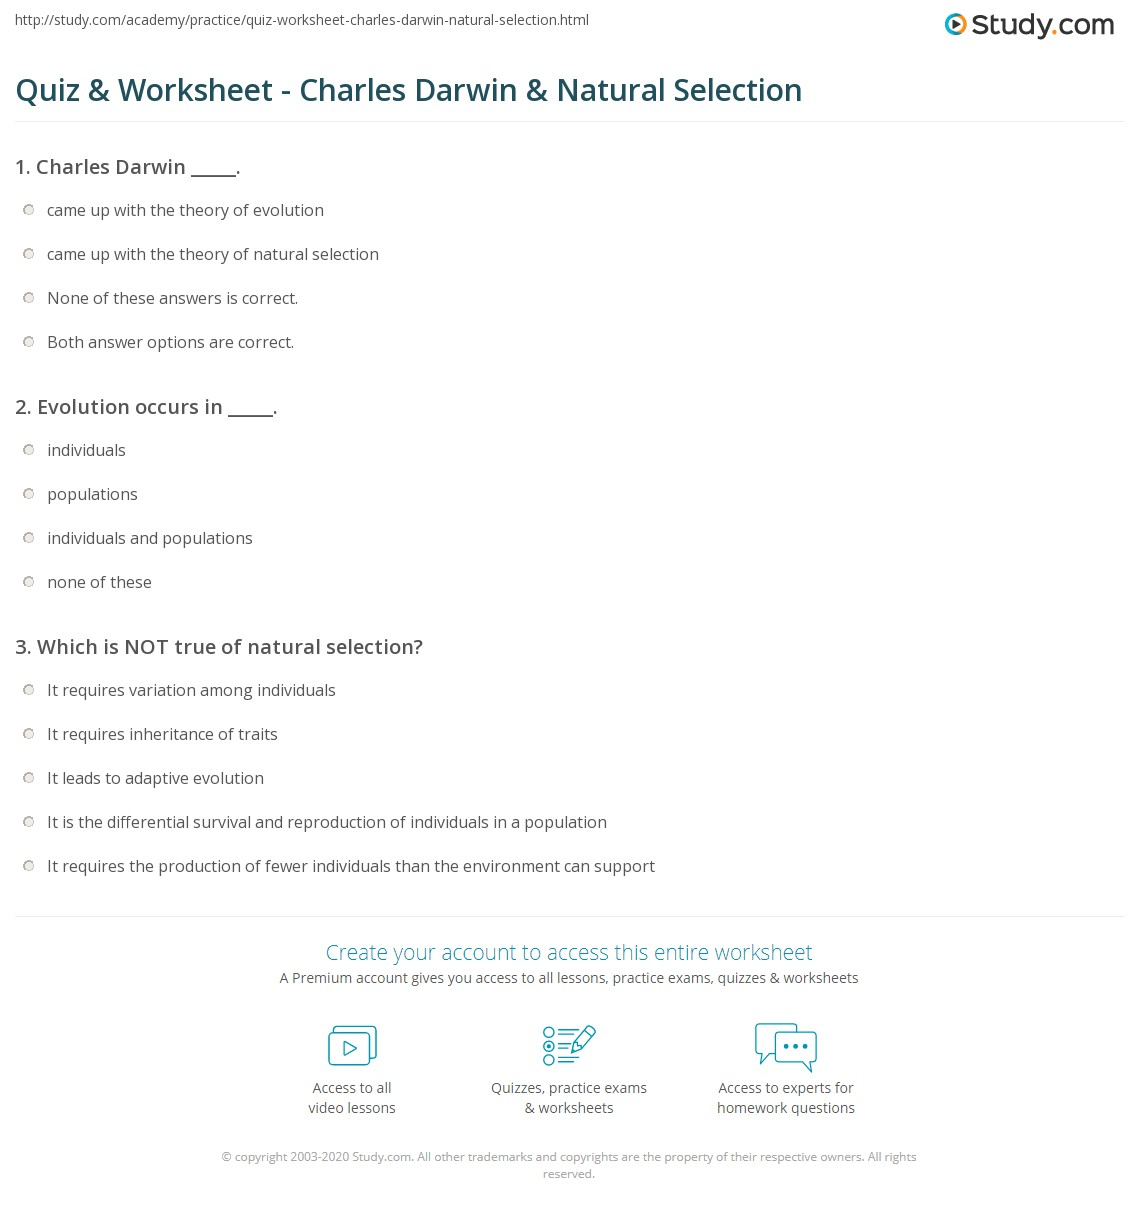 Quiz  Worksheet  Charles Darwin  Natural Selection  Study.com